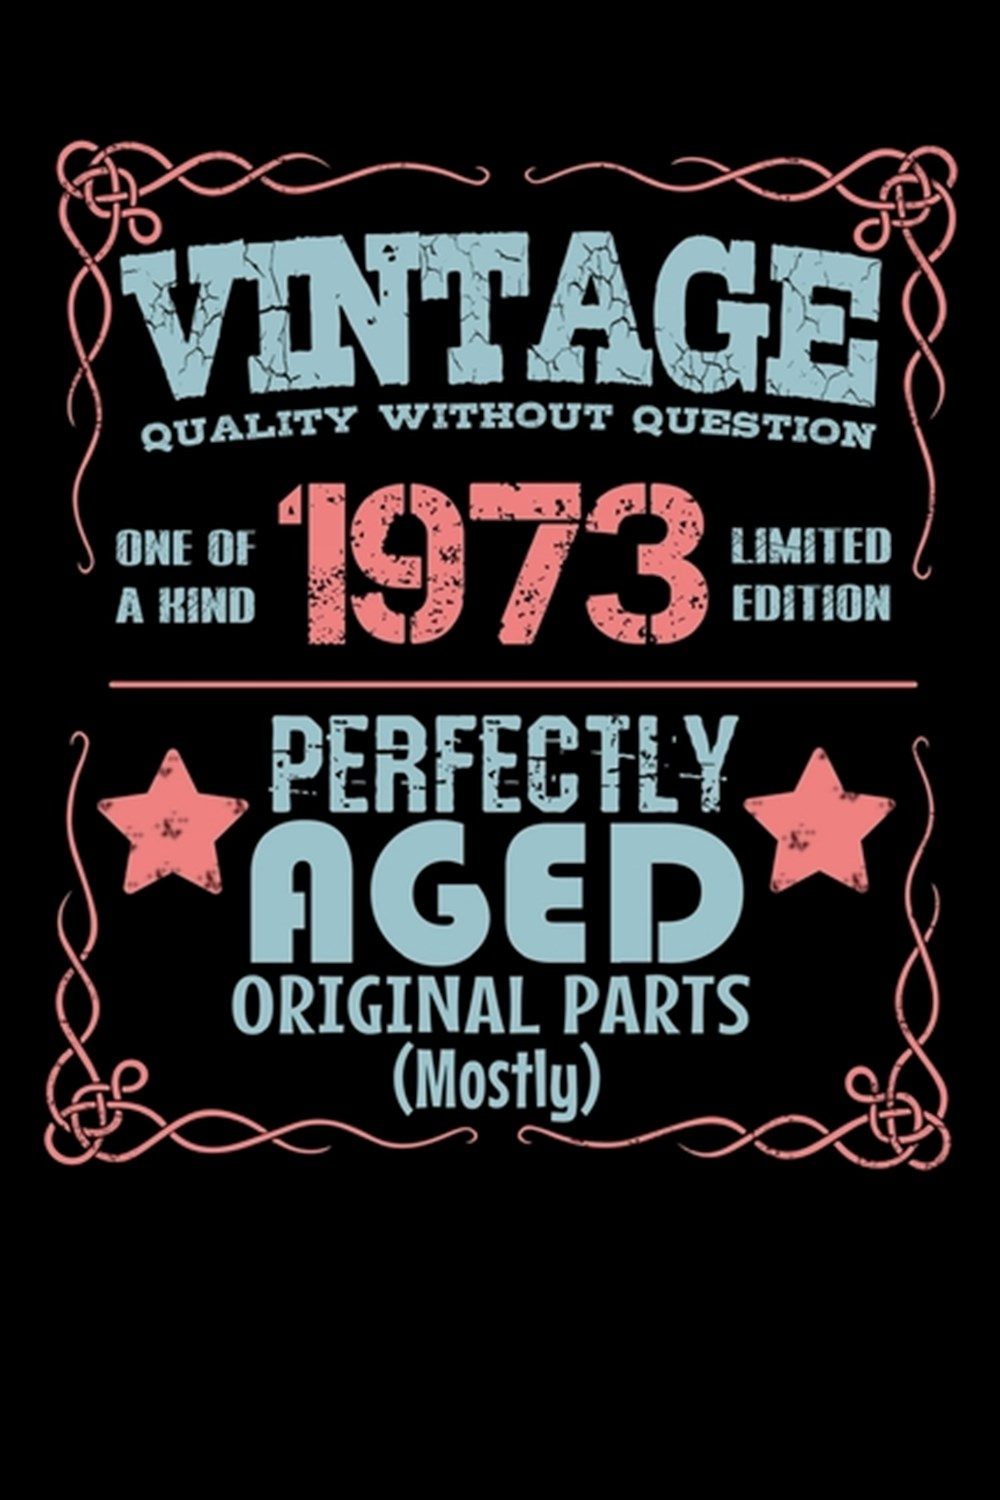 Vintage Quality Without Question One of a Kind 1973 Limited Edition Perfectly Aged Original Parts Mo